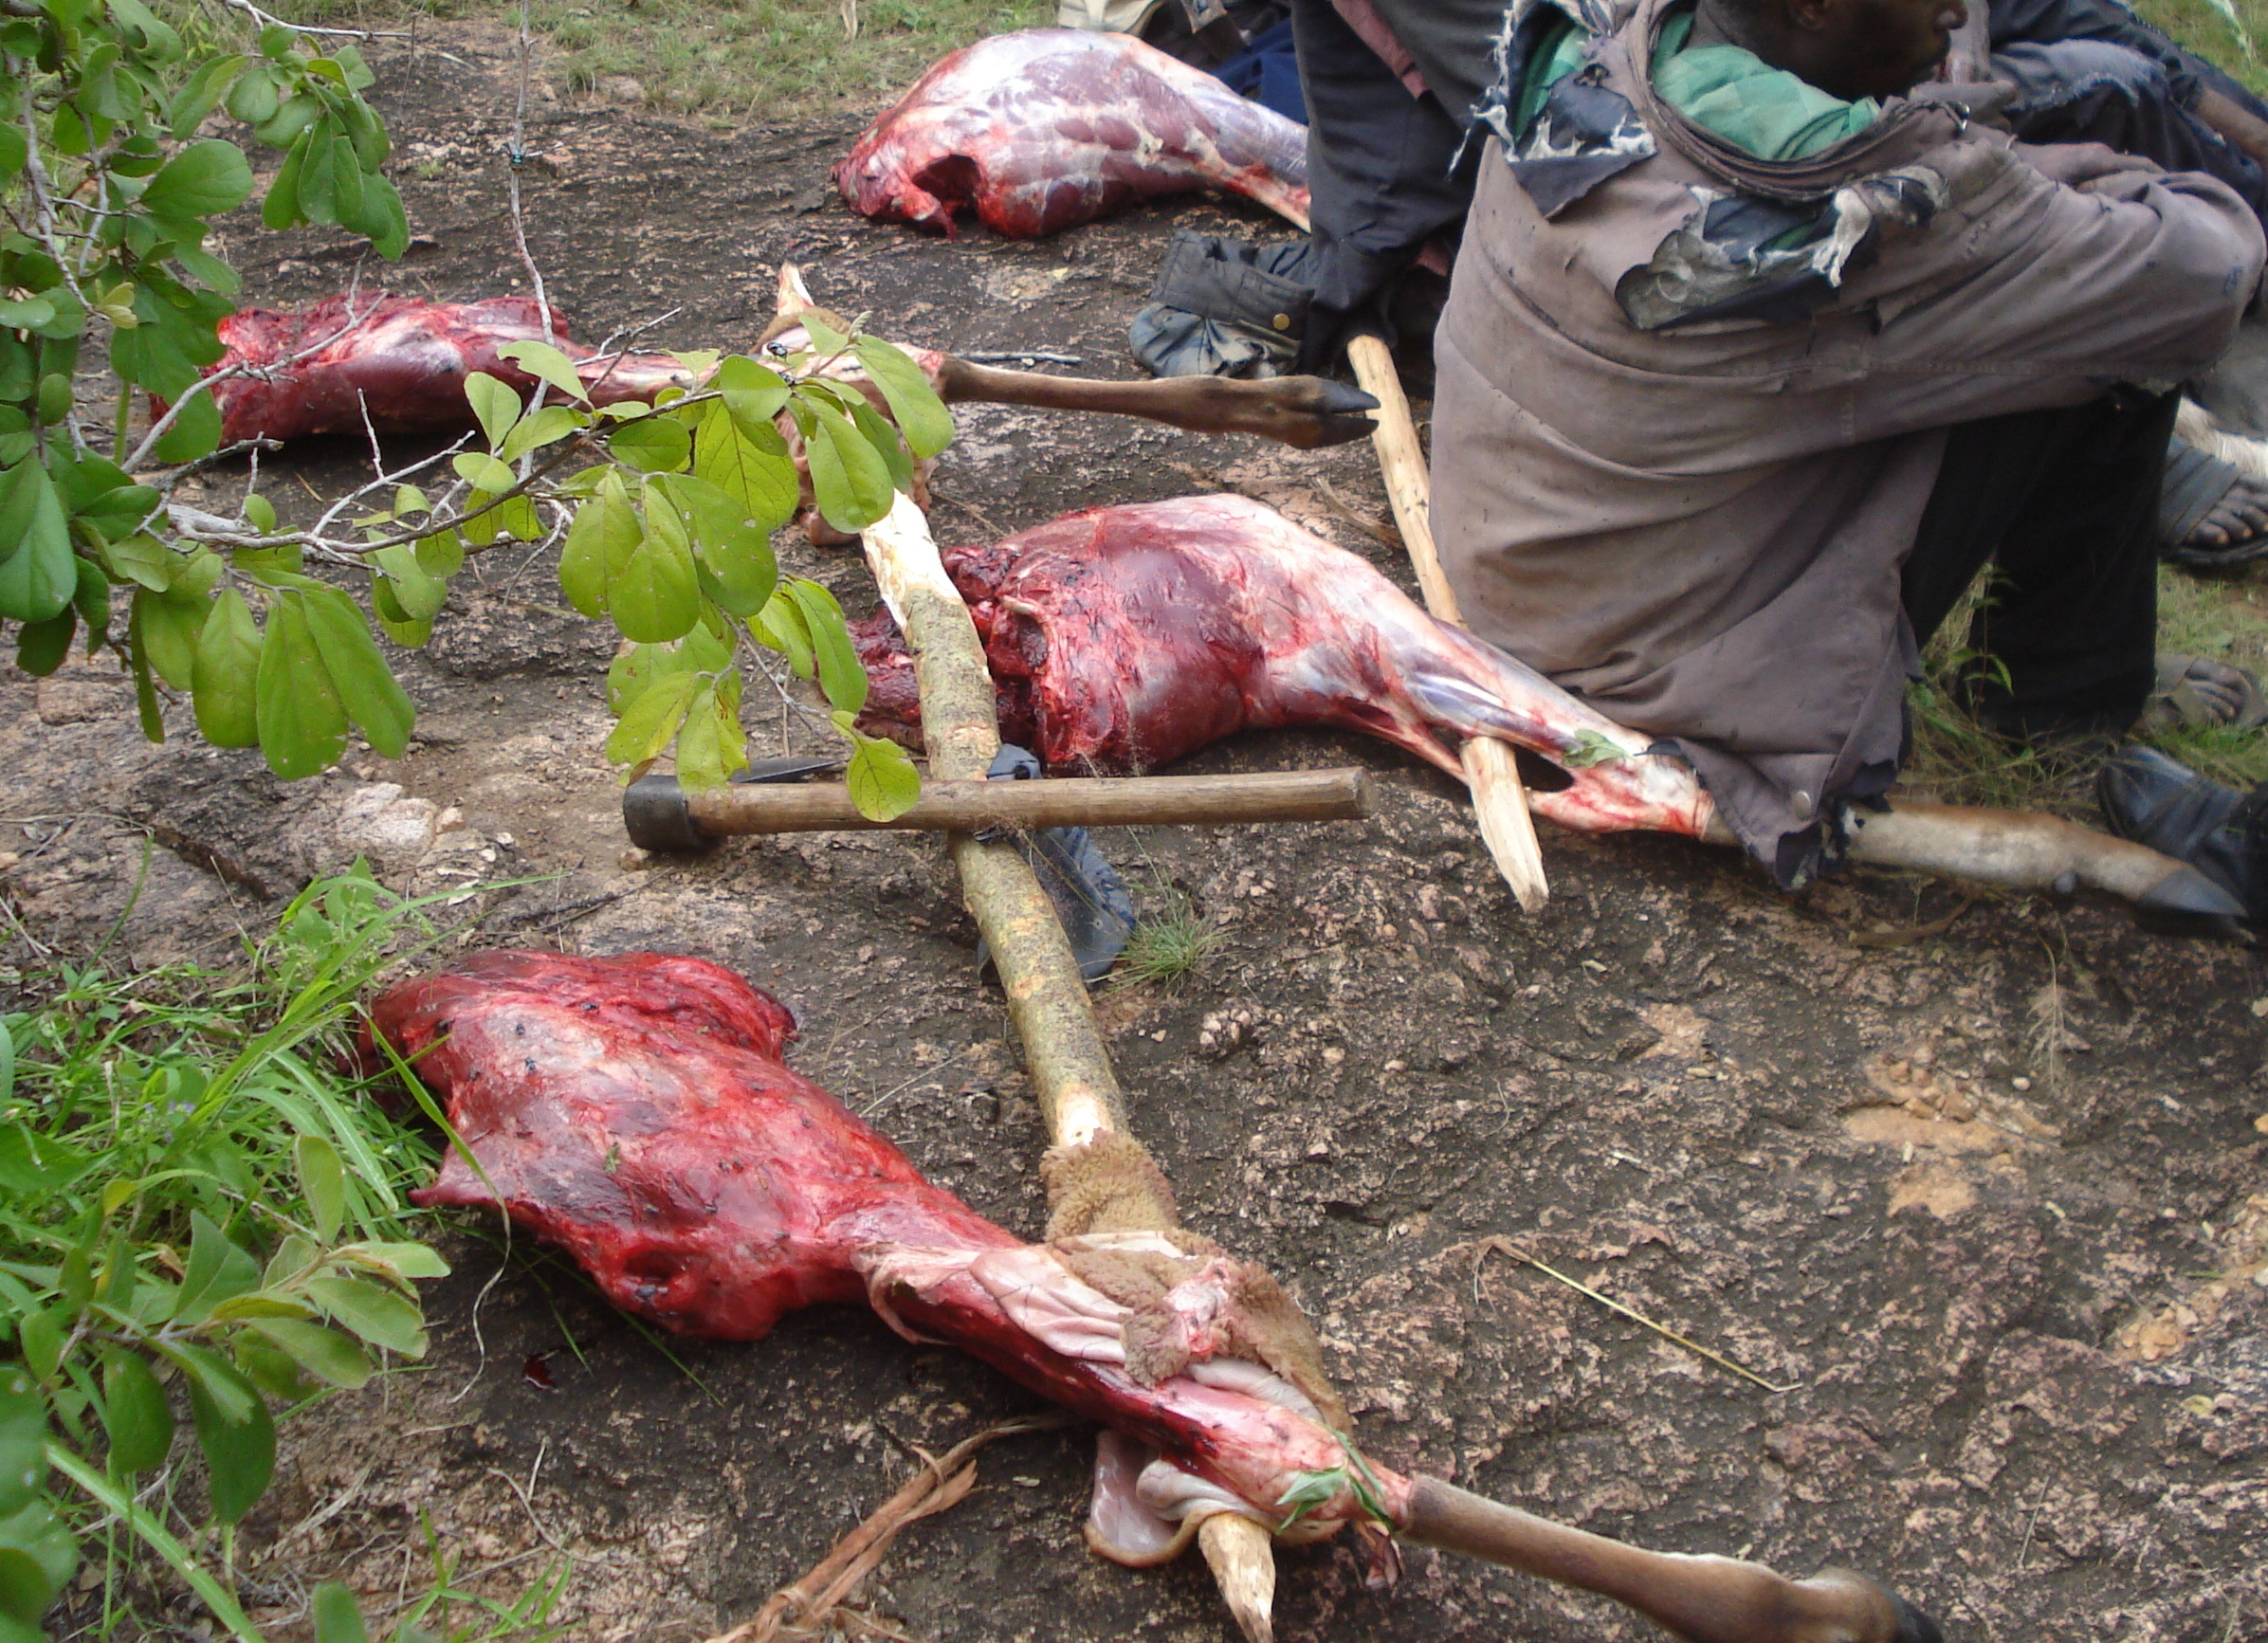 illegal poaching What is poaching poaching is the illegal taking or possession of game animals and fish, non-game, and protected, threatened.